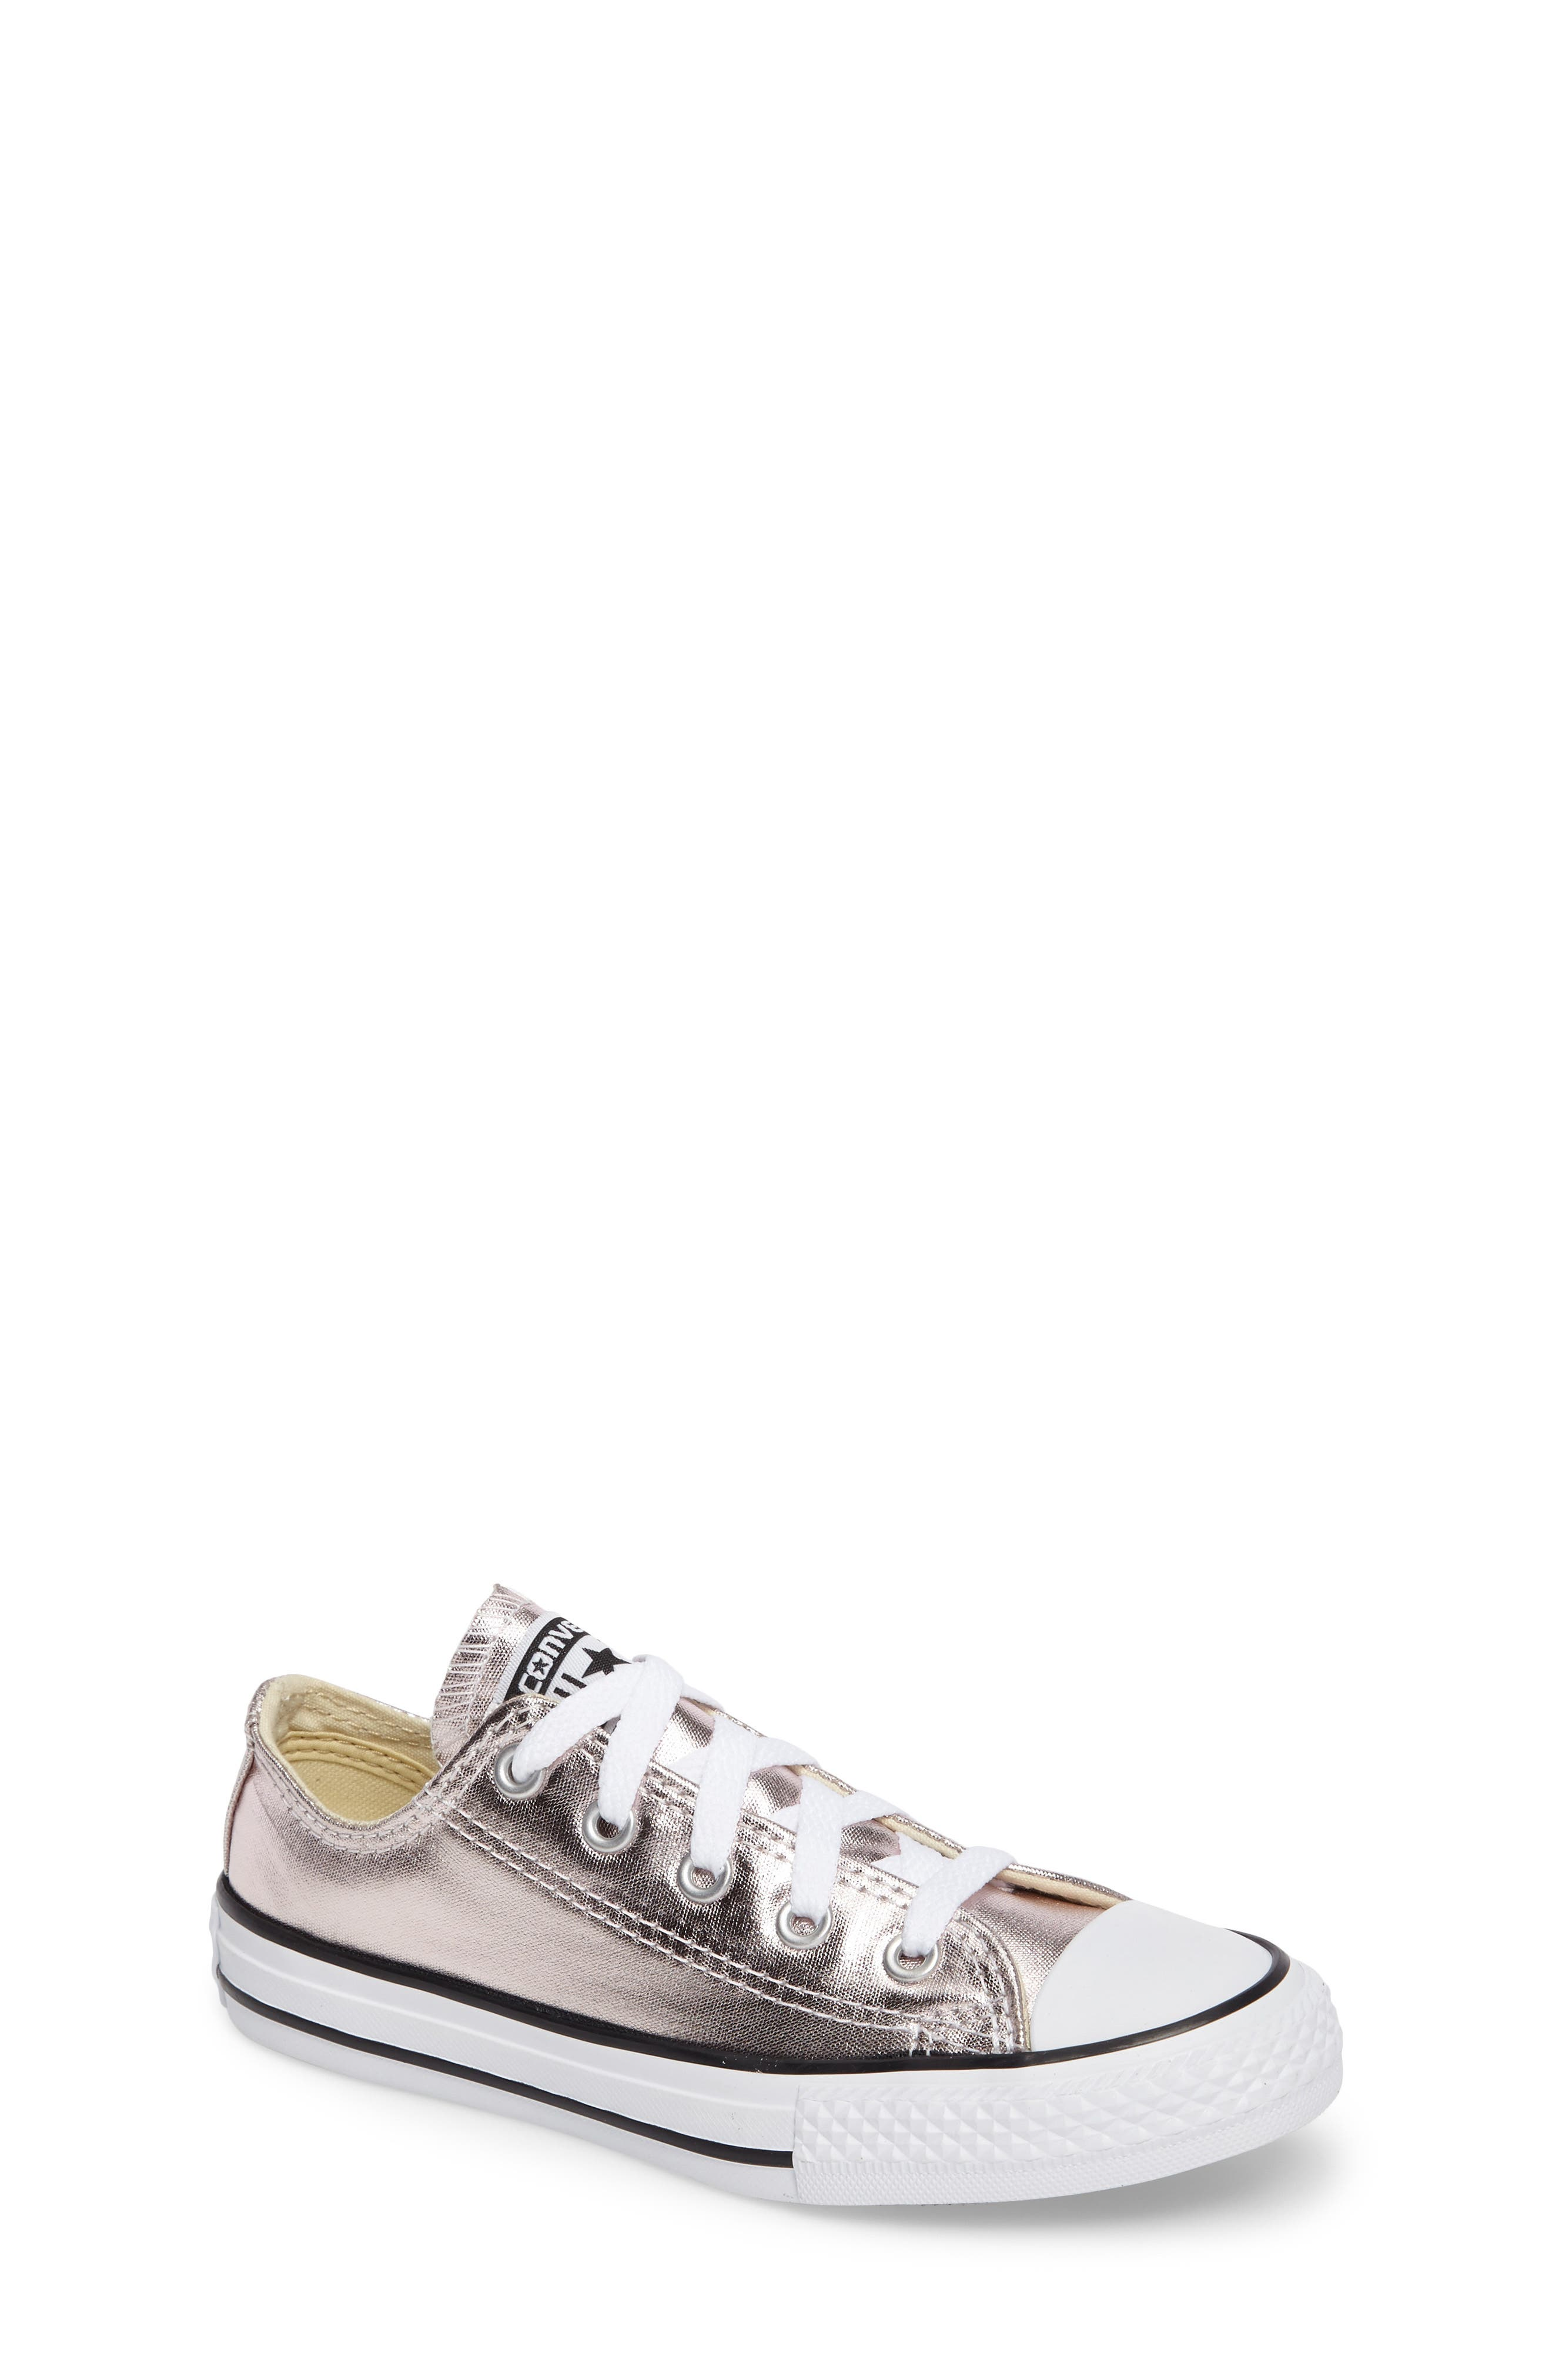 Chuck Taylor<sup>®</sup> All Star<sup>®</sup> Ox Metallic Low Top Sneaker,                         Main,                         color, Rose Quartz/ White/ Black